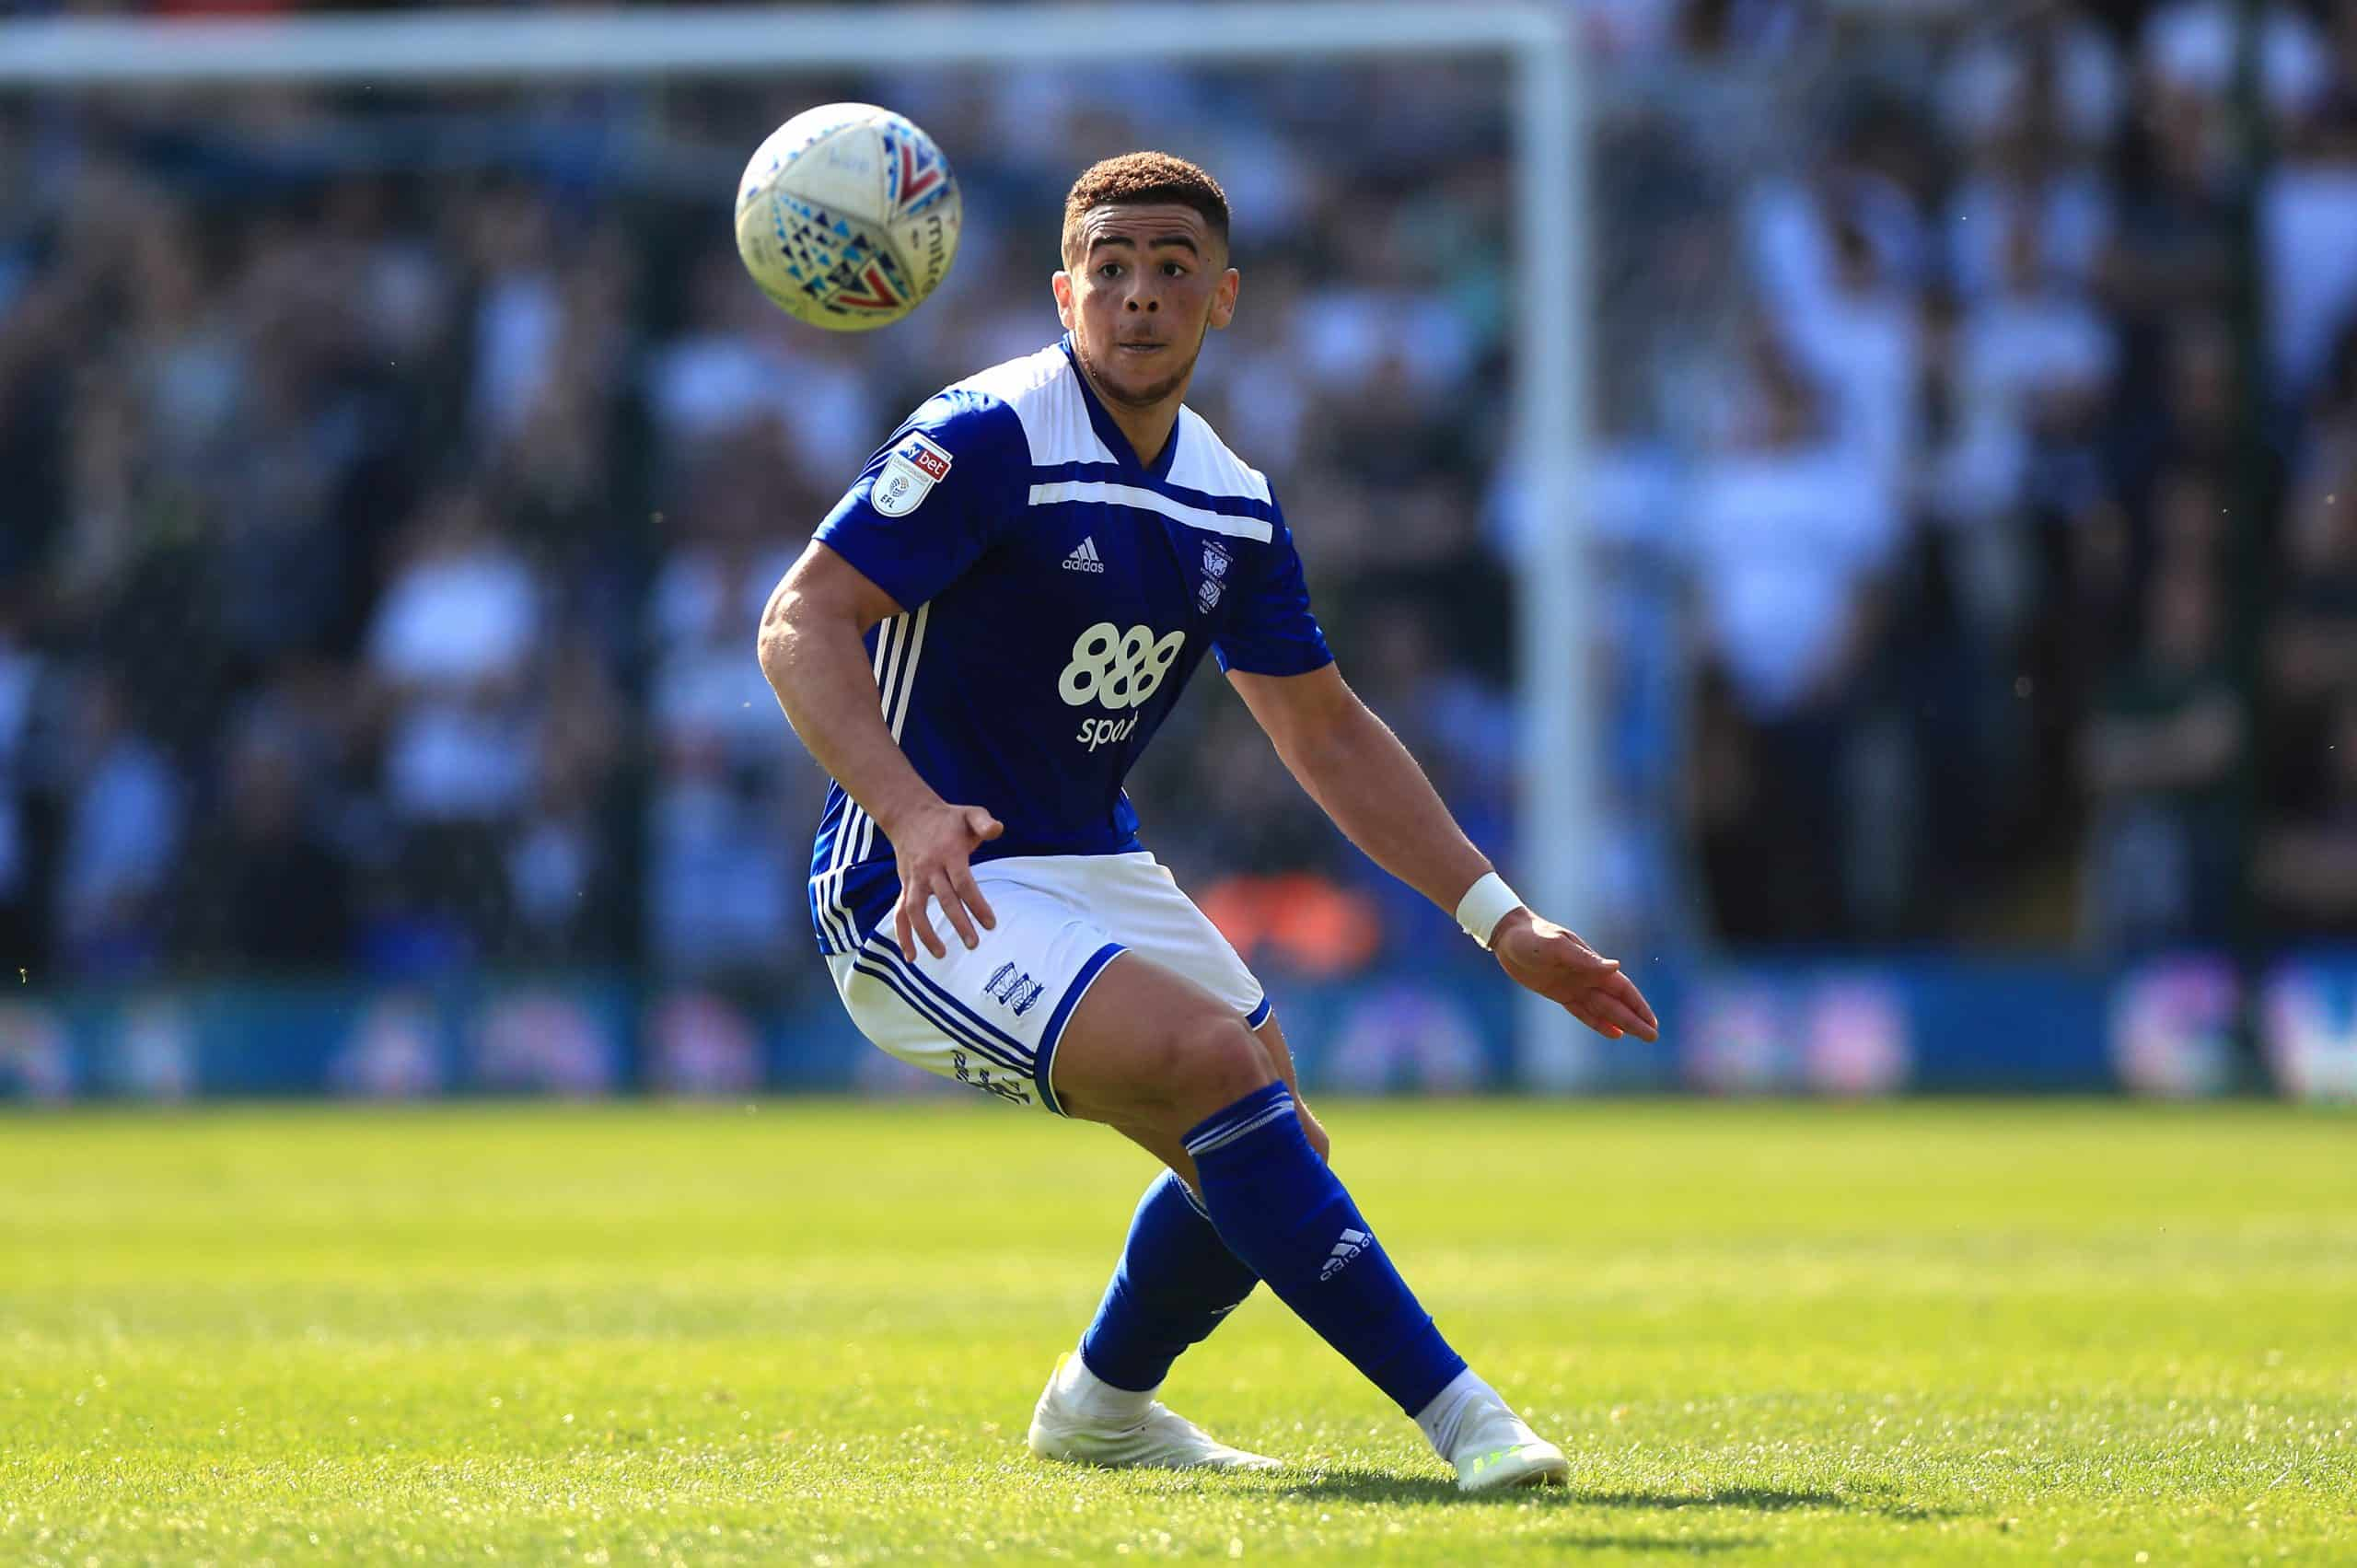 Southampton sign Che Adams, sell Matt Targett to Aston Villa